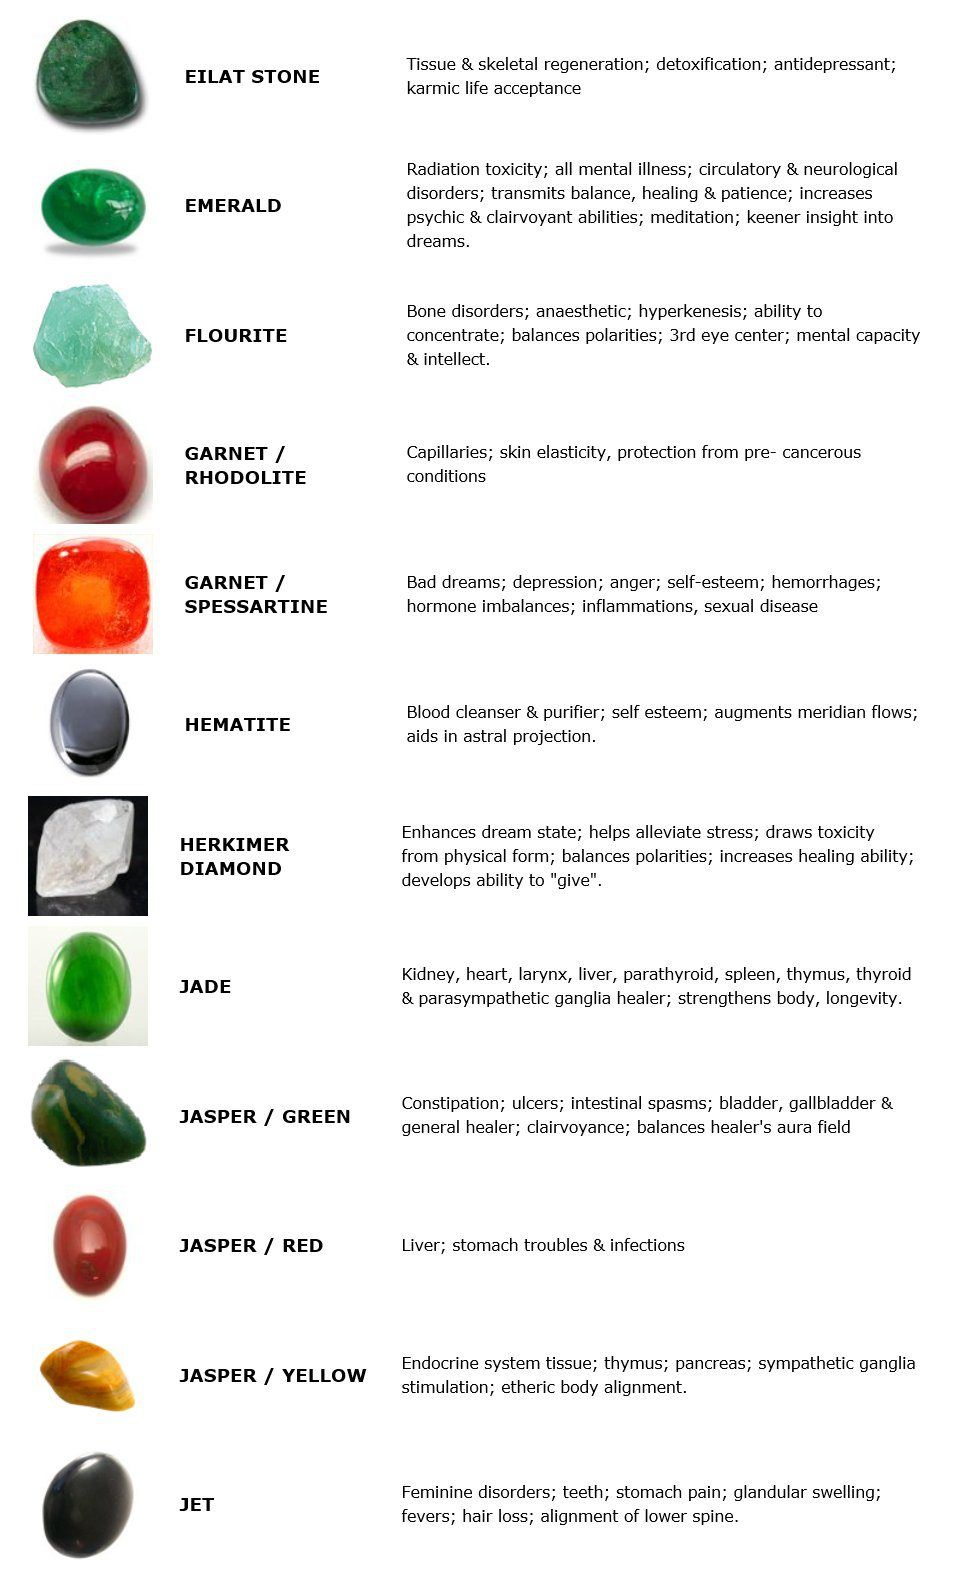 Guide To Crystals And Gemstones For Healing | Gemstones, Crystals ...